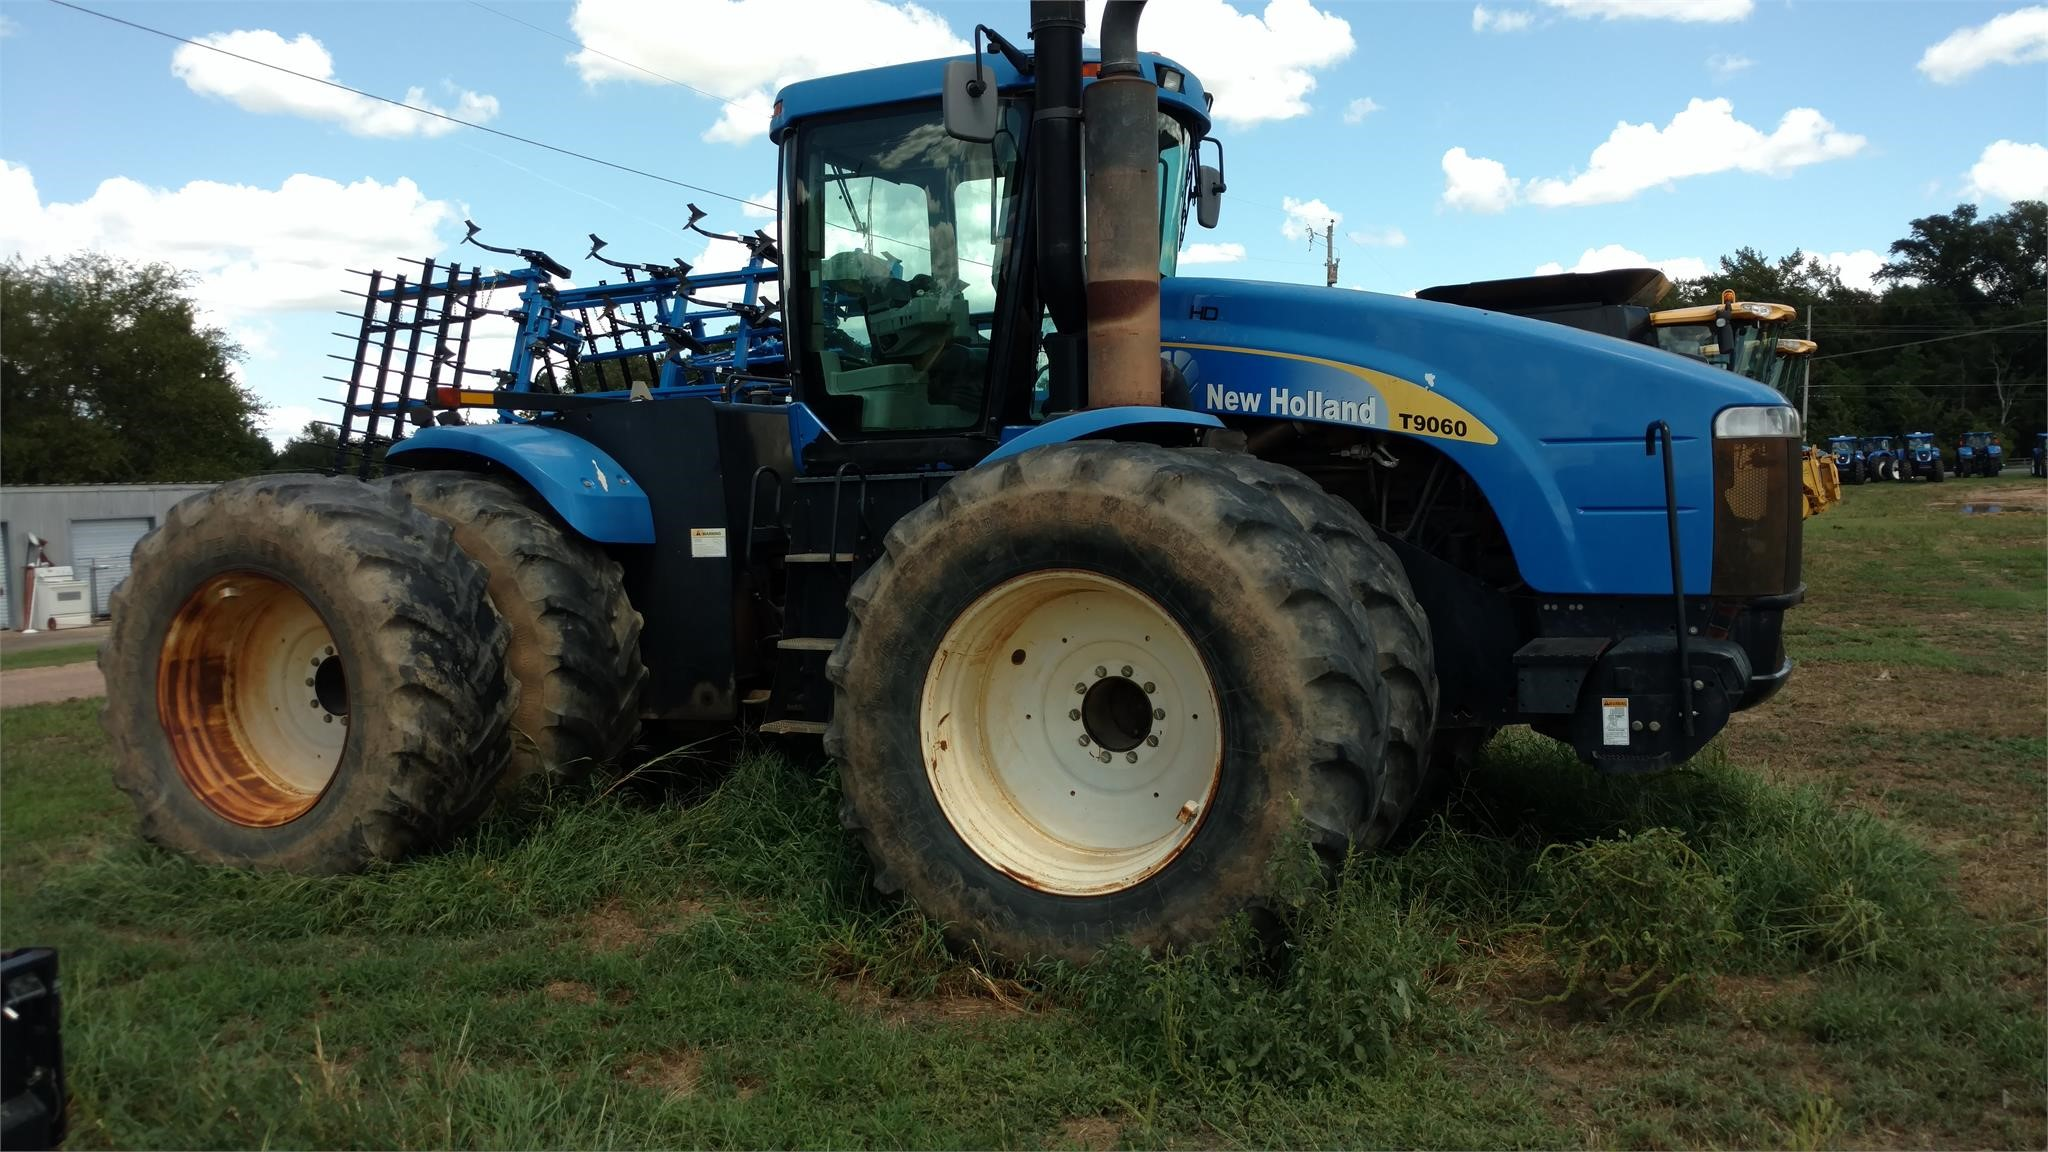 New Holland T9060 HD Tractor